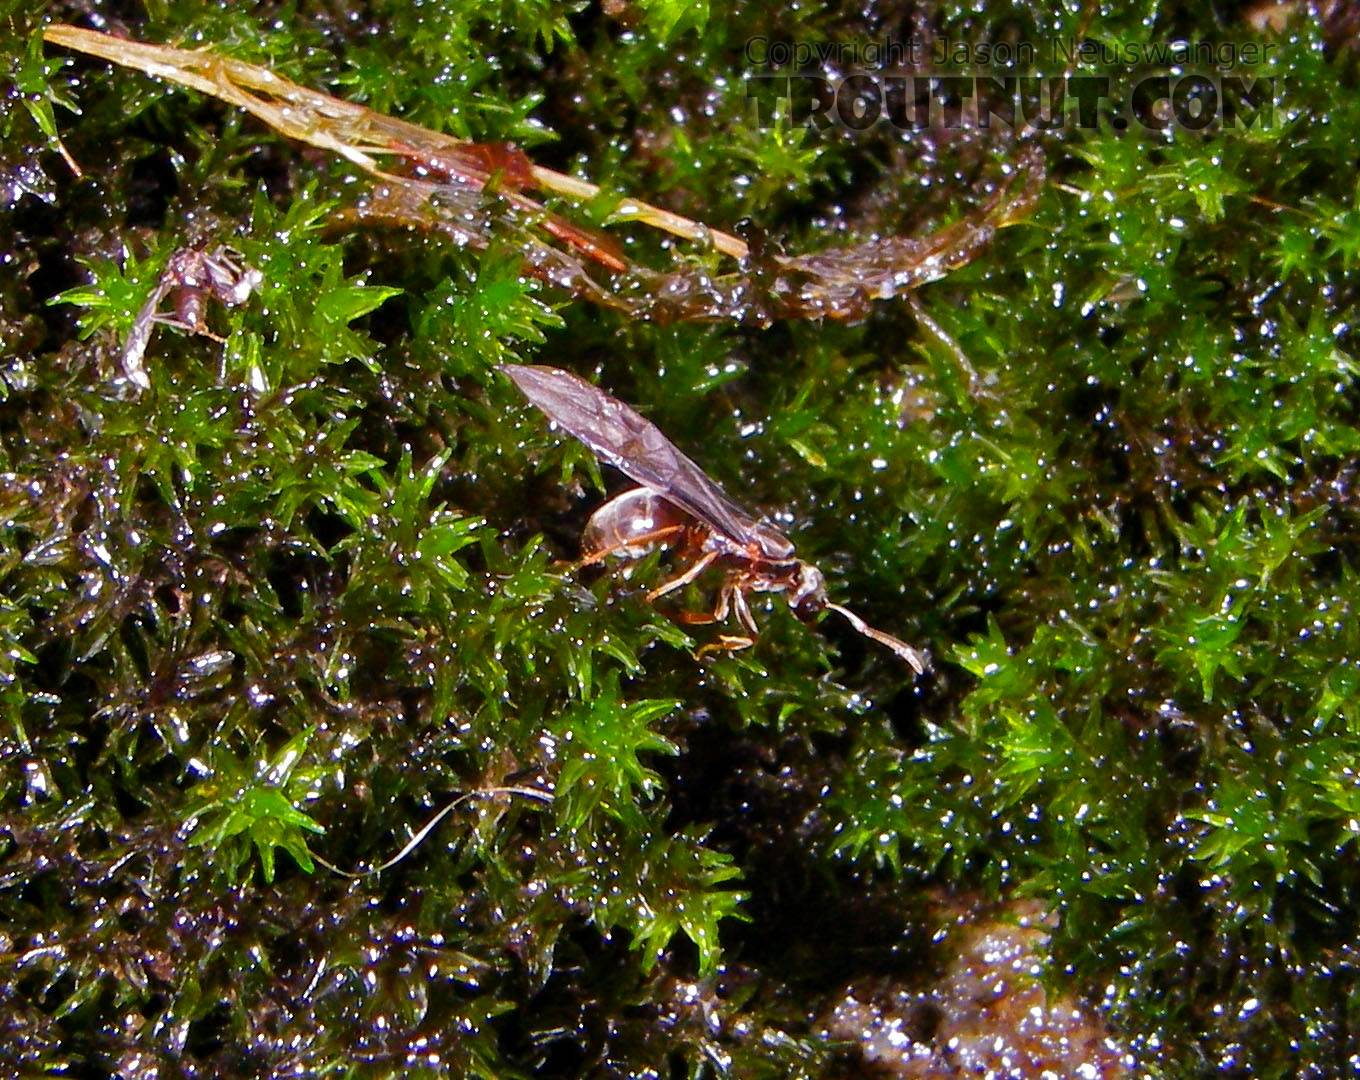 This winged ant was on a mossy rock in the middle of a small stream. From Rondout Creek in New York.